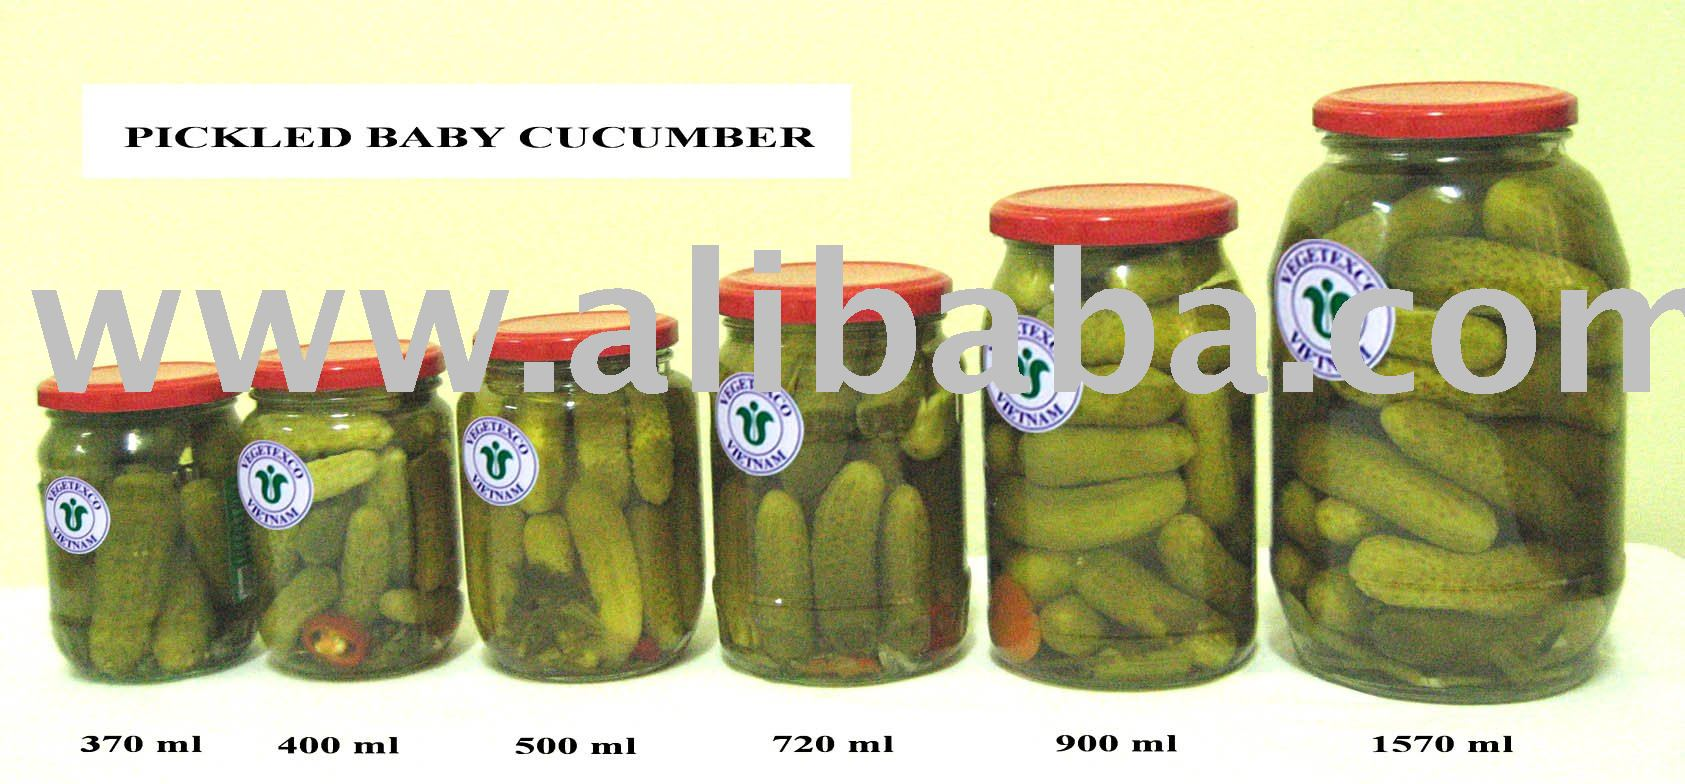 Pickled Baby Cucumber in Jars